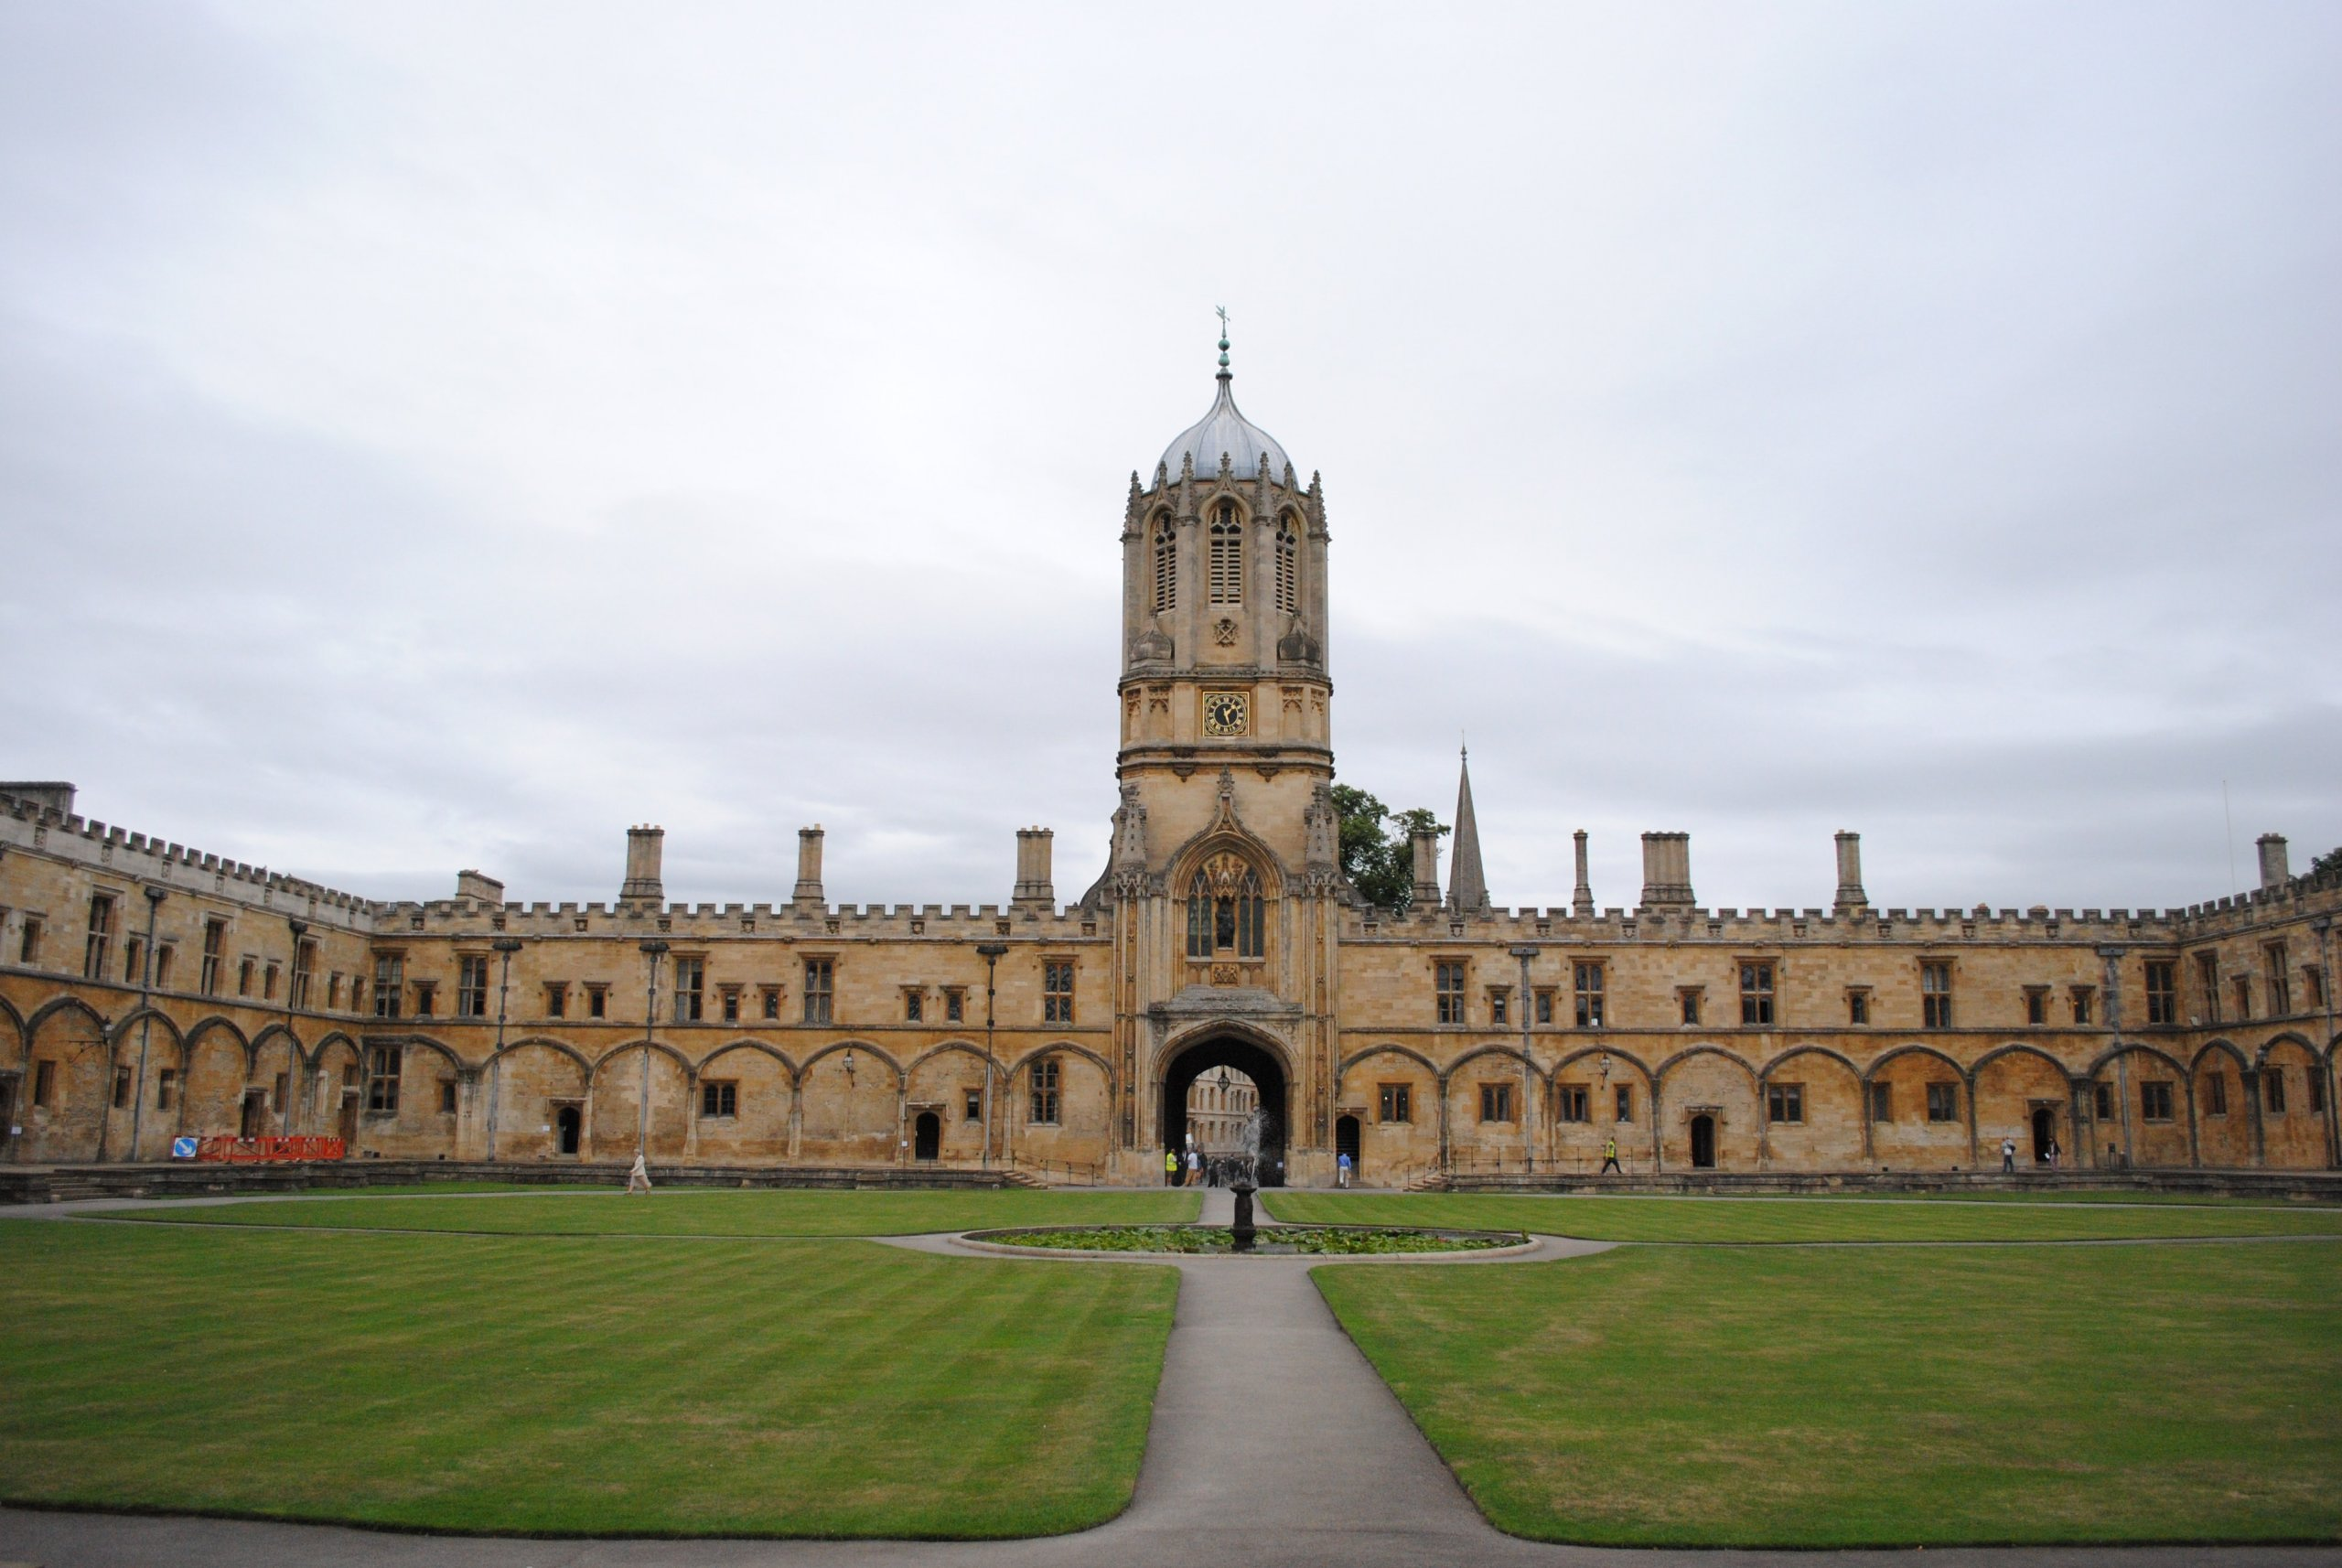 Oxford university main campus and courtyard, Oxford, UK